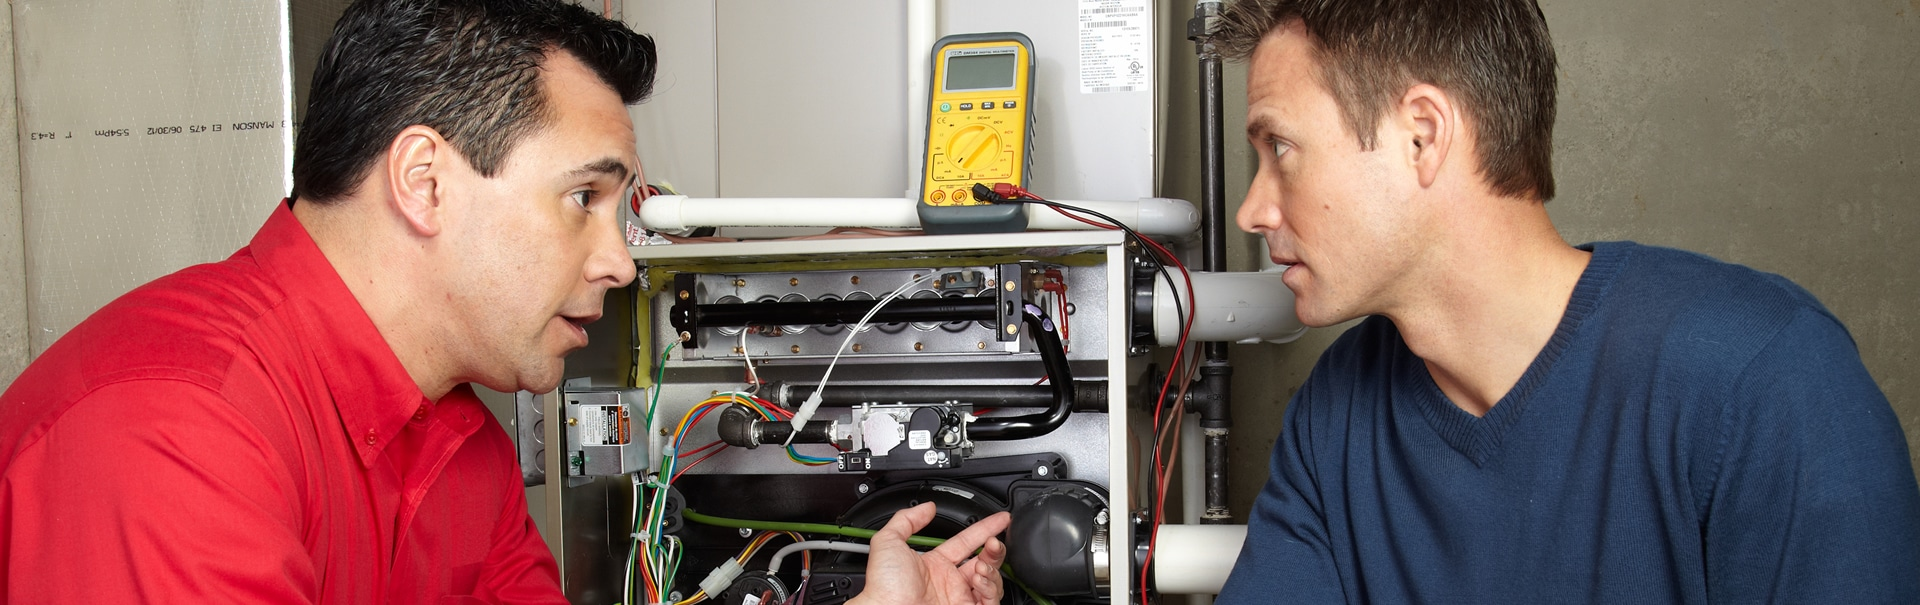 Why Does My Heater Smell Like It's Burning? - Air Pros ... Smells Like Wiring on